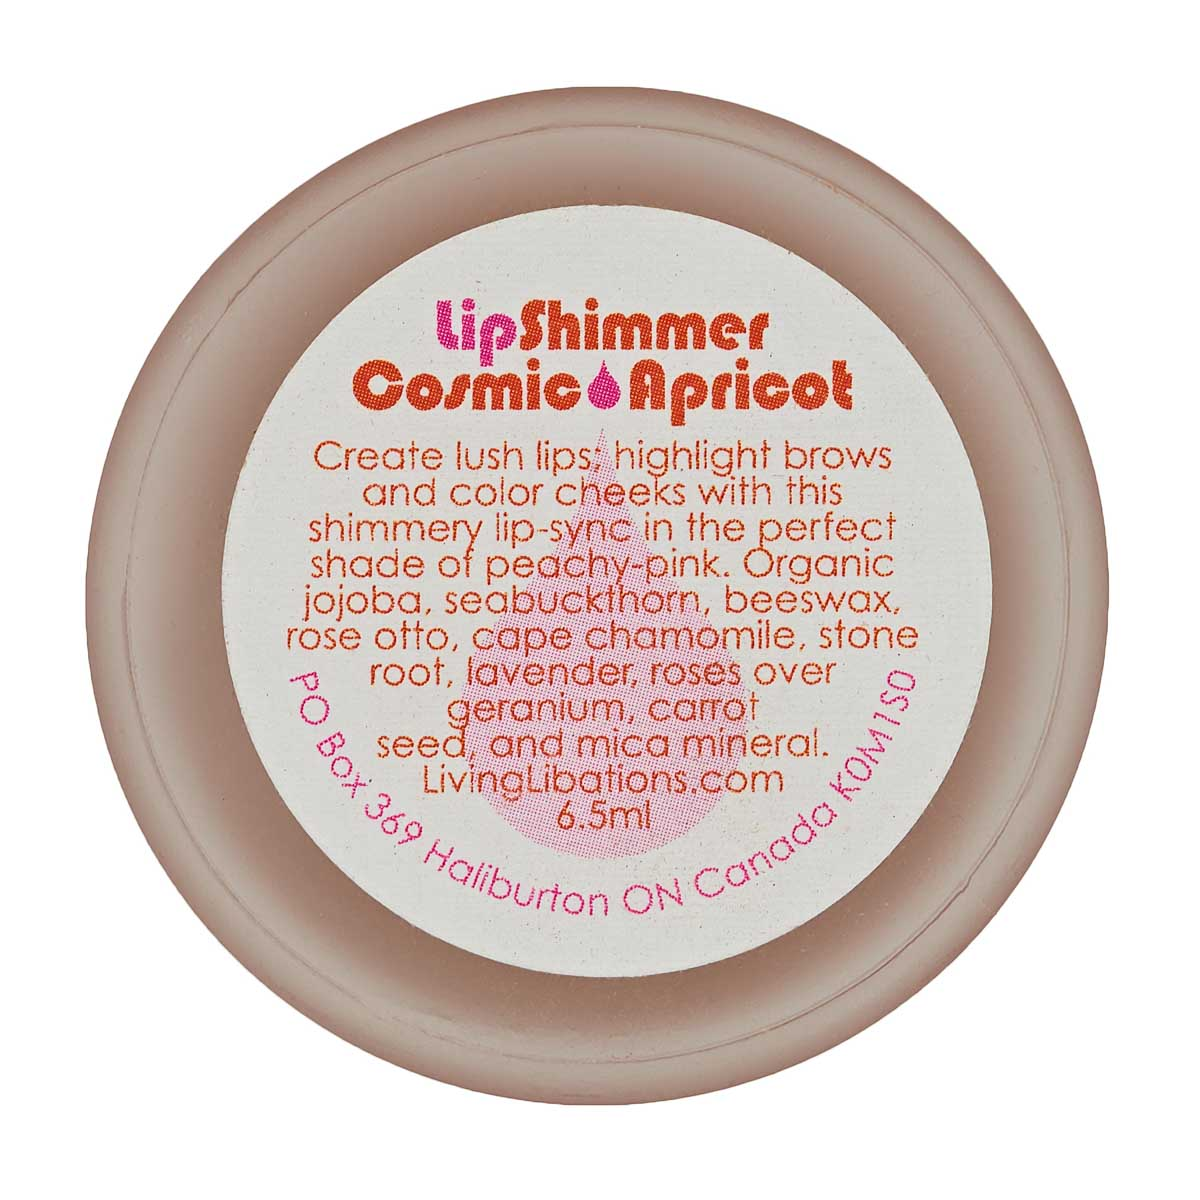 Living Libations - Lip Shimmer Cosmic Apricot